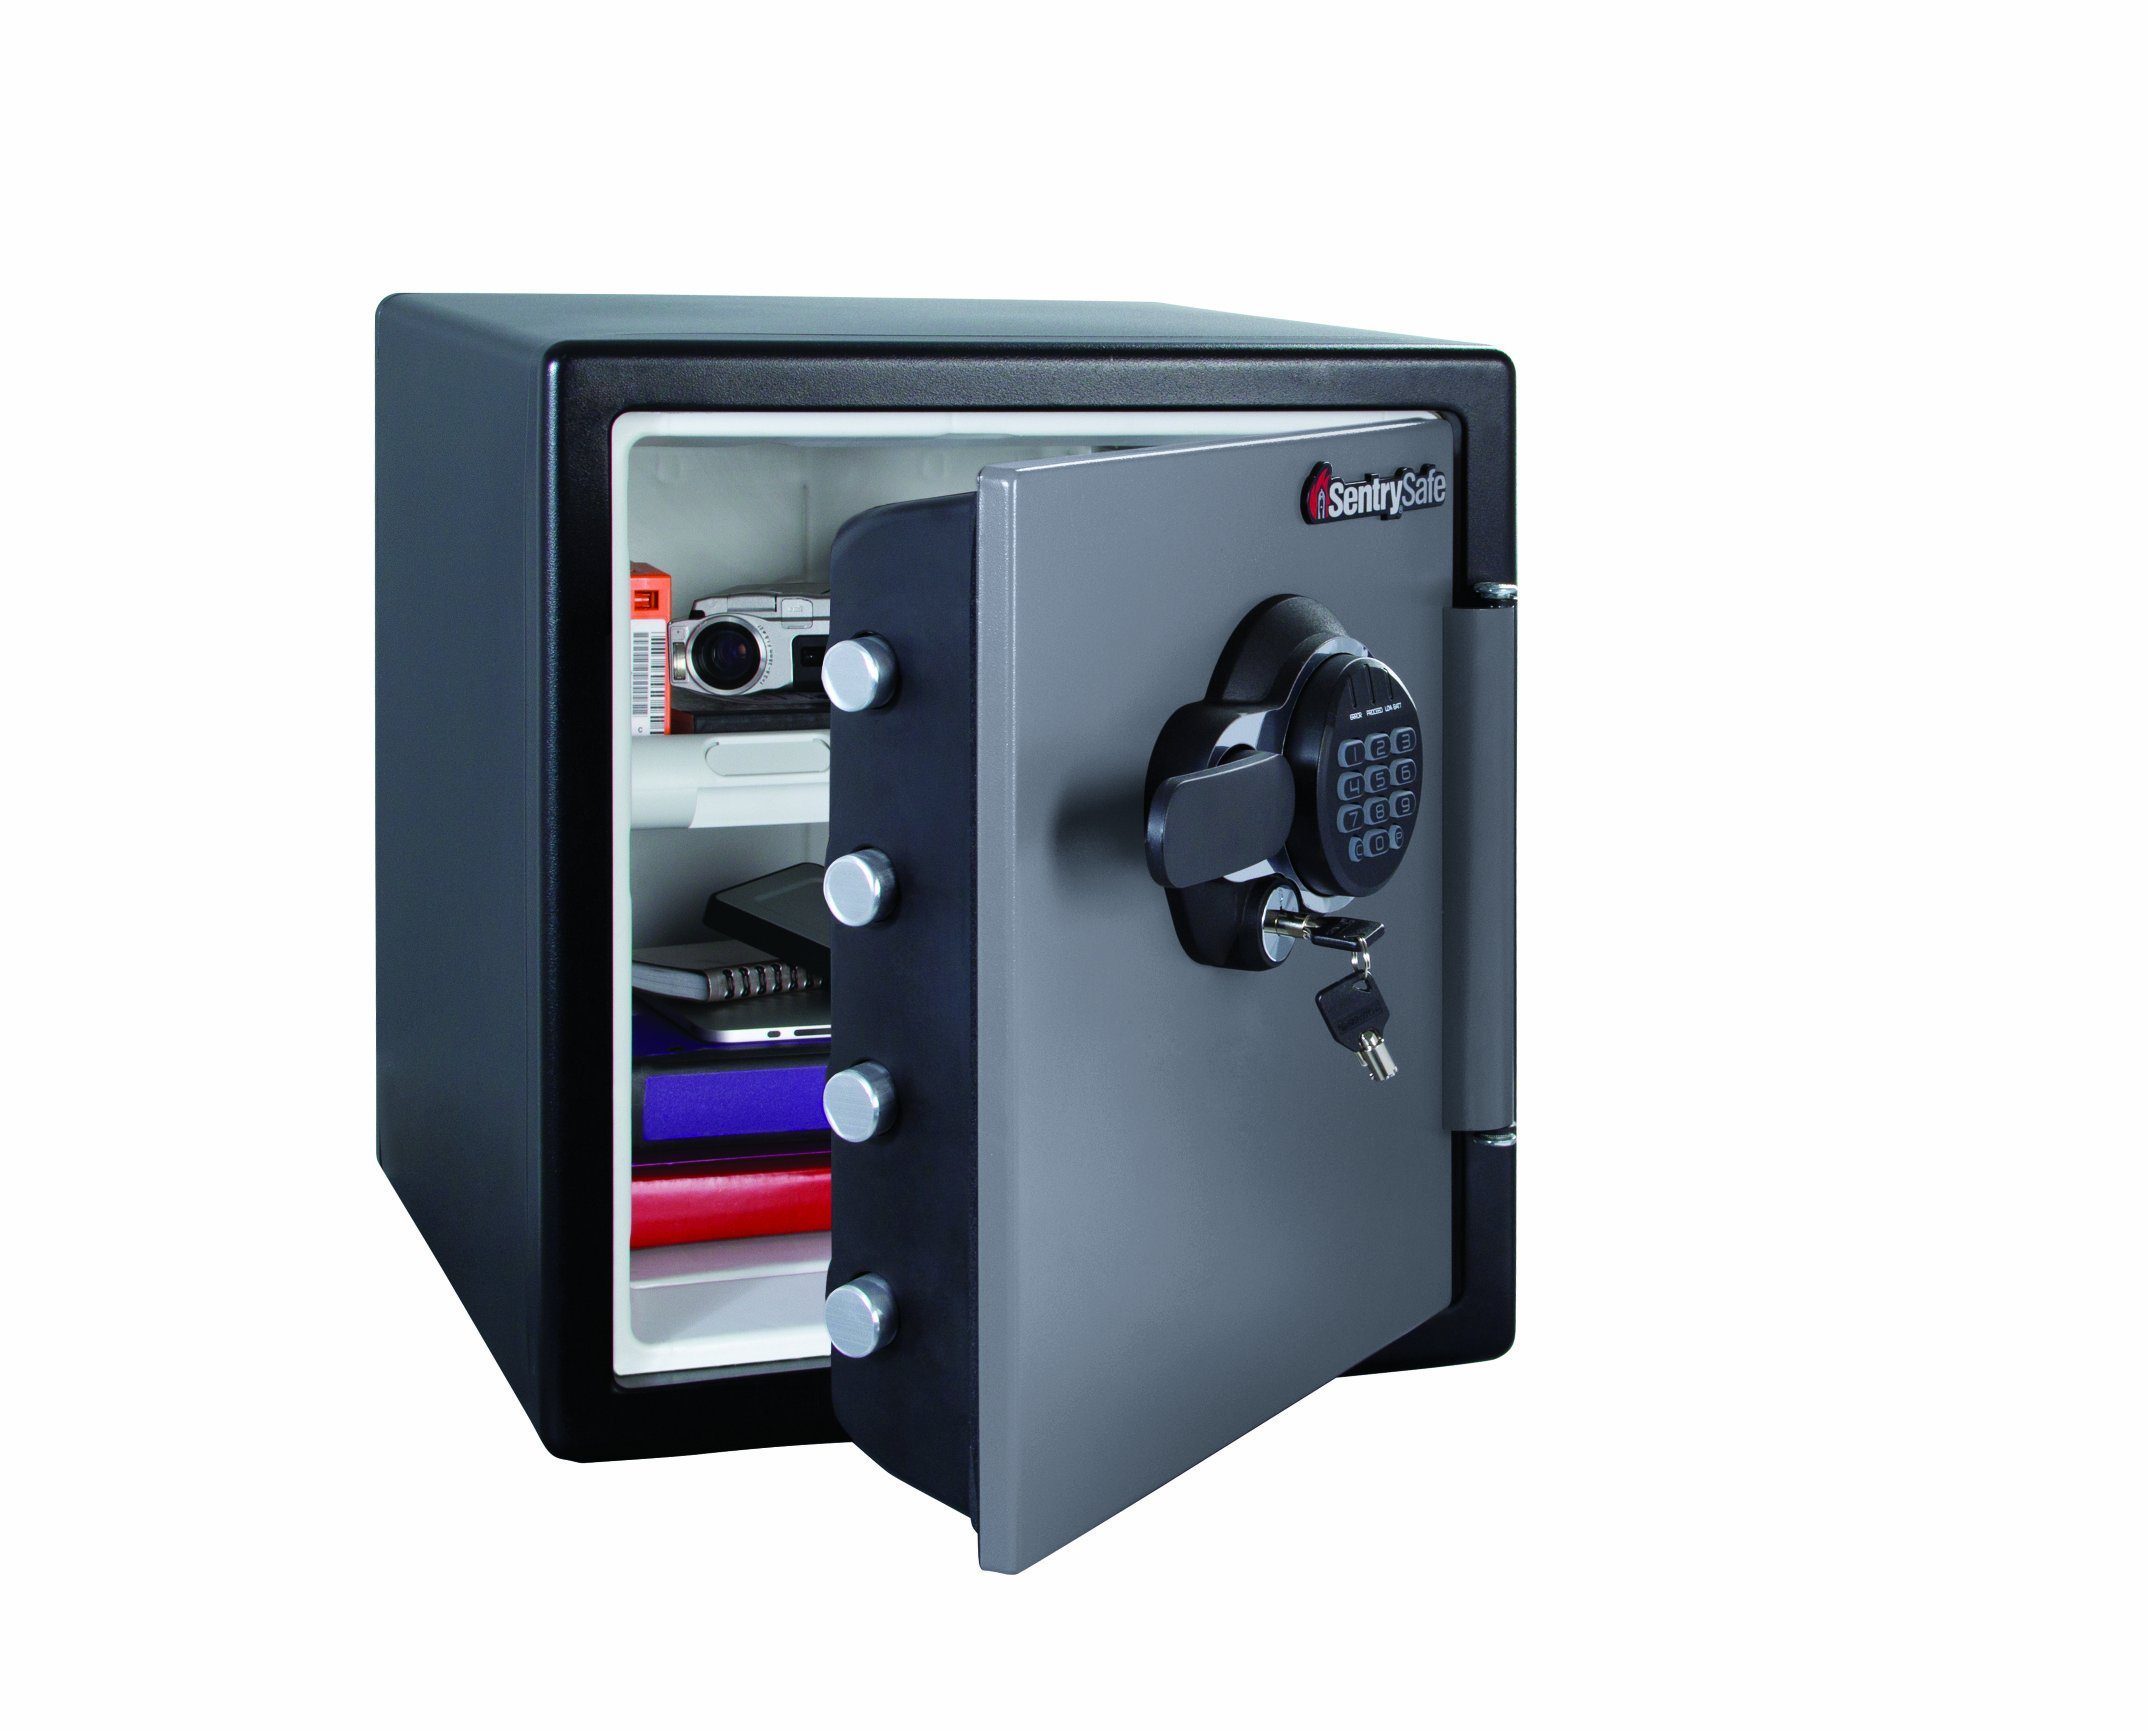 Sentry Safe SFW123GTC 34.8L Capacity Fire/ Water Resistant Electronic and Key Safe with 1hr Resistance by SentrySafe